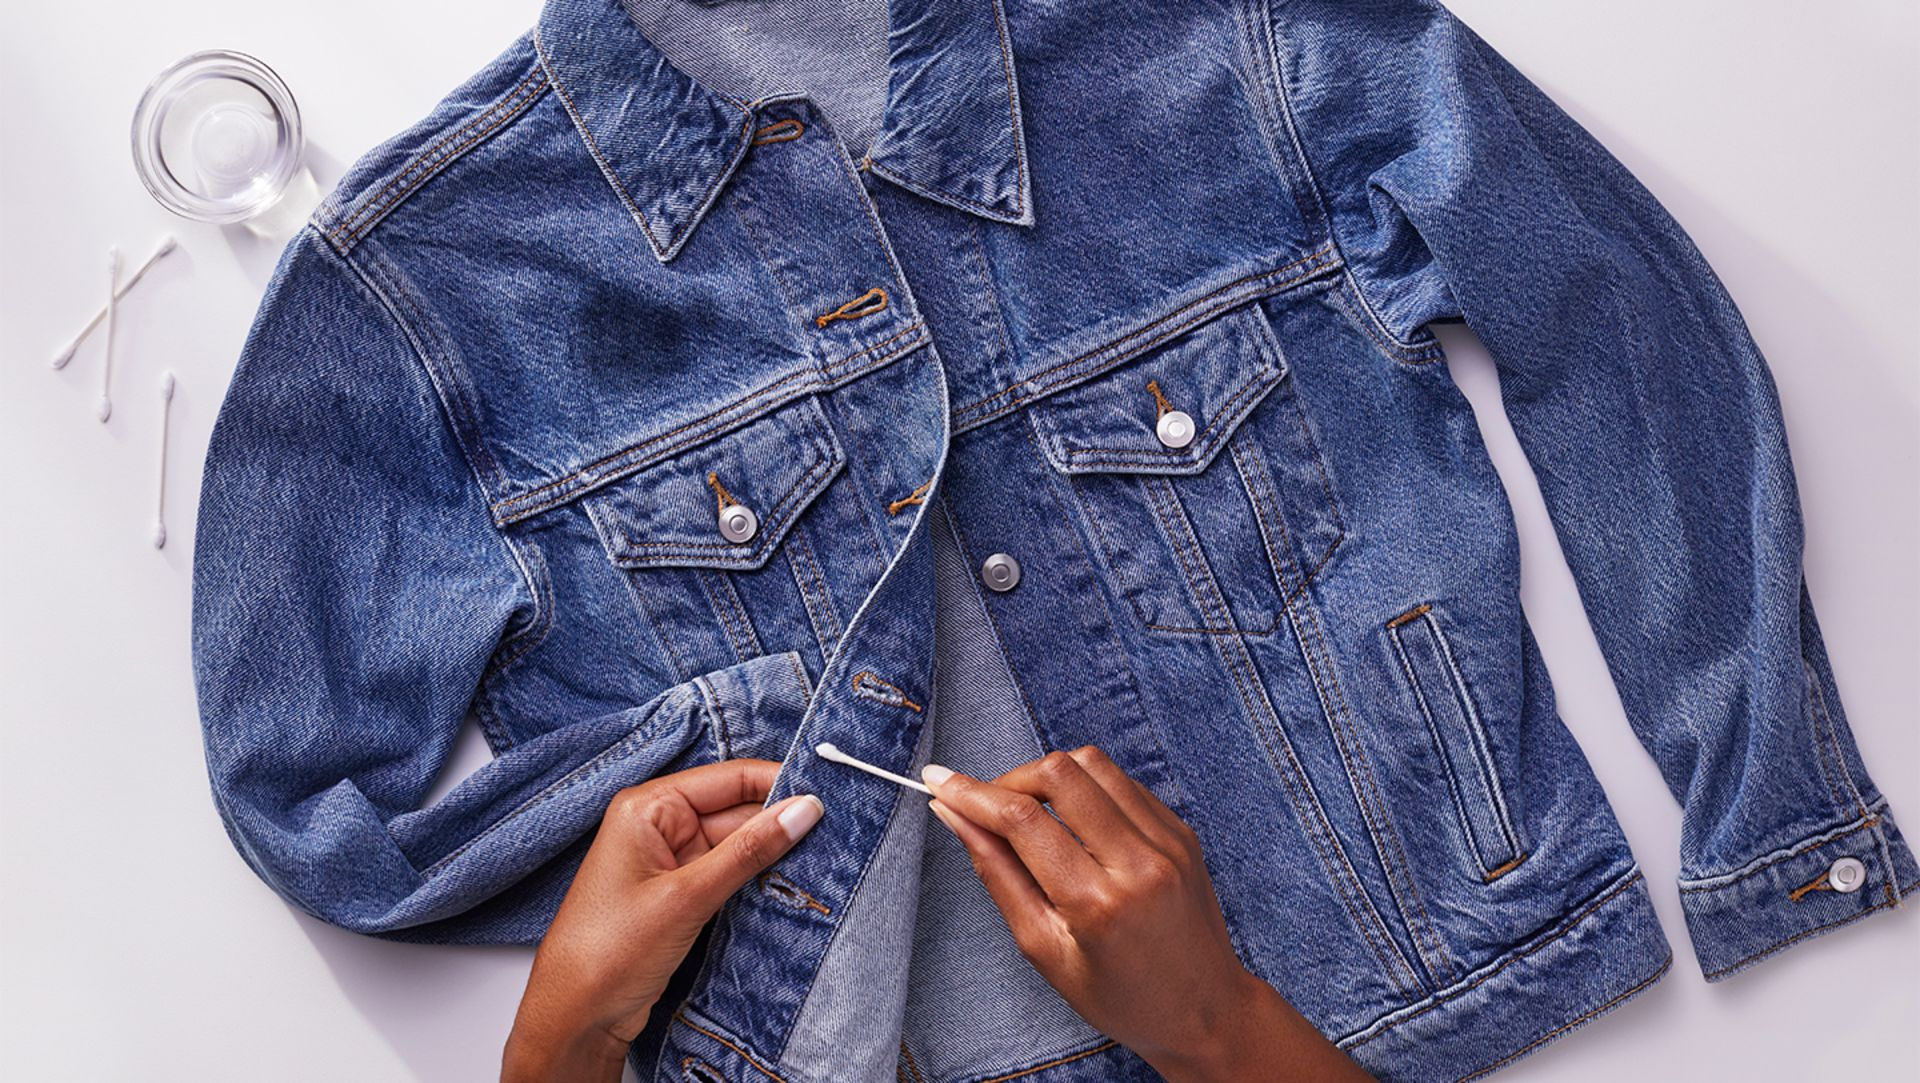 A person removing excess stain from a denim jacket with a cotton swab